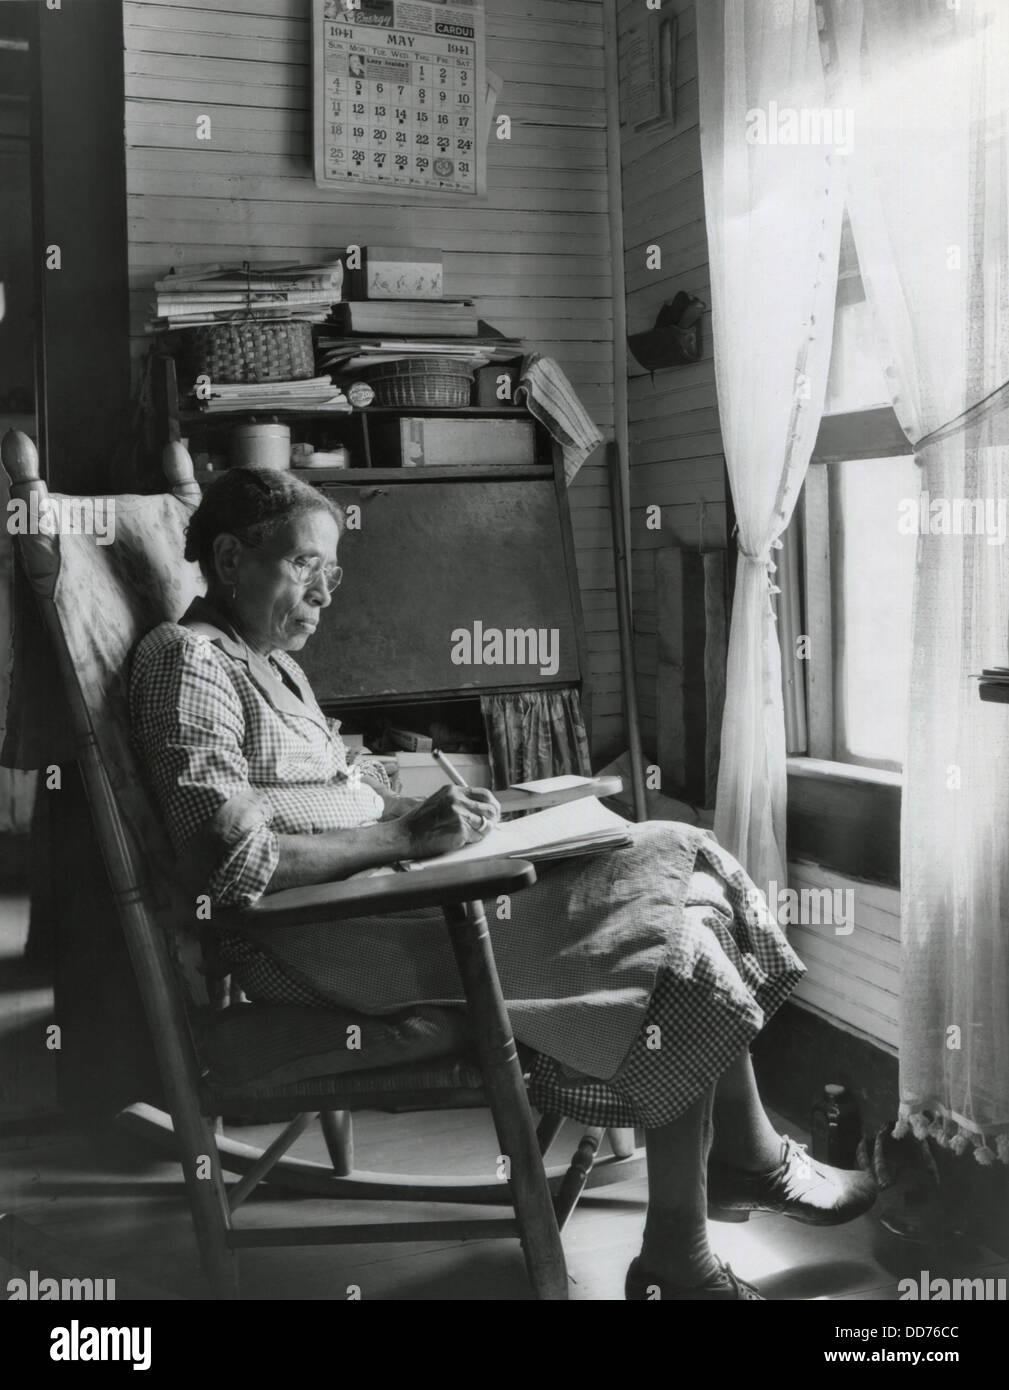 Elderly African American Woman Writing In A Rocking Chair